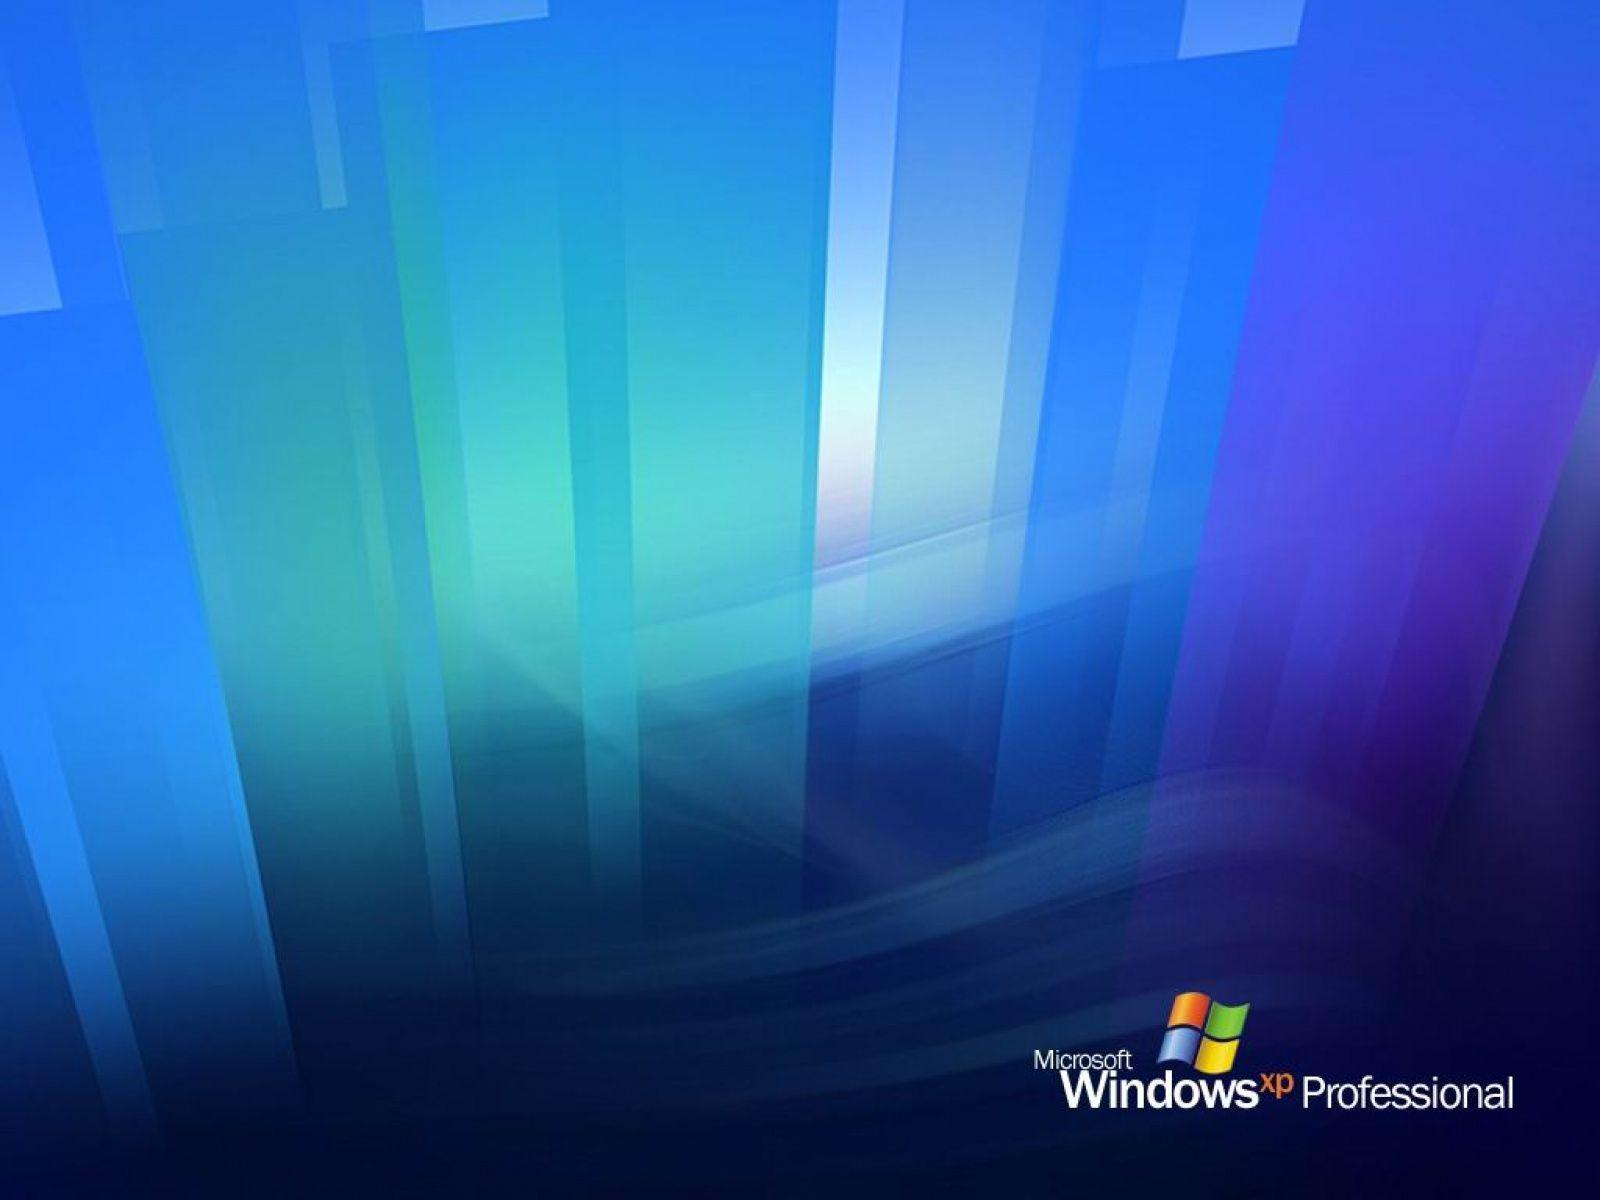 Windows Xp Professional Wallpapers Hd Wallpaper Cave